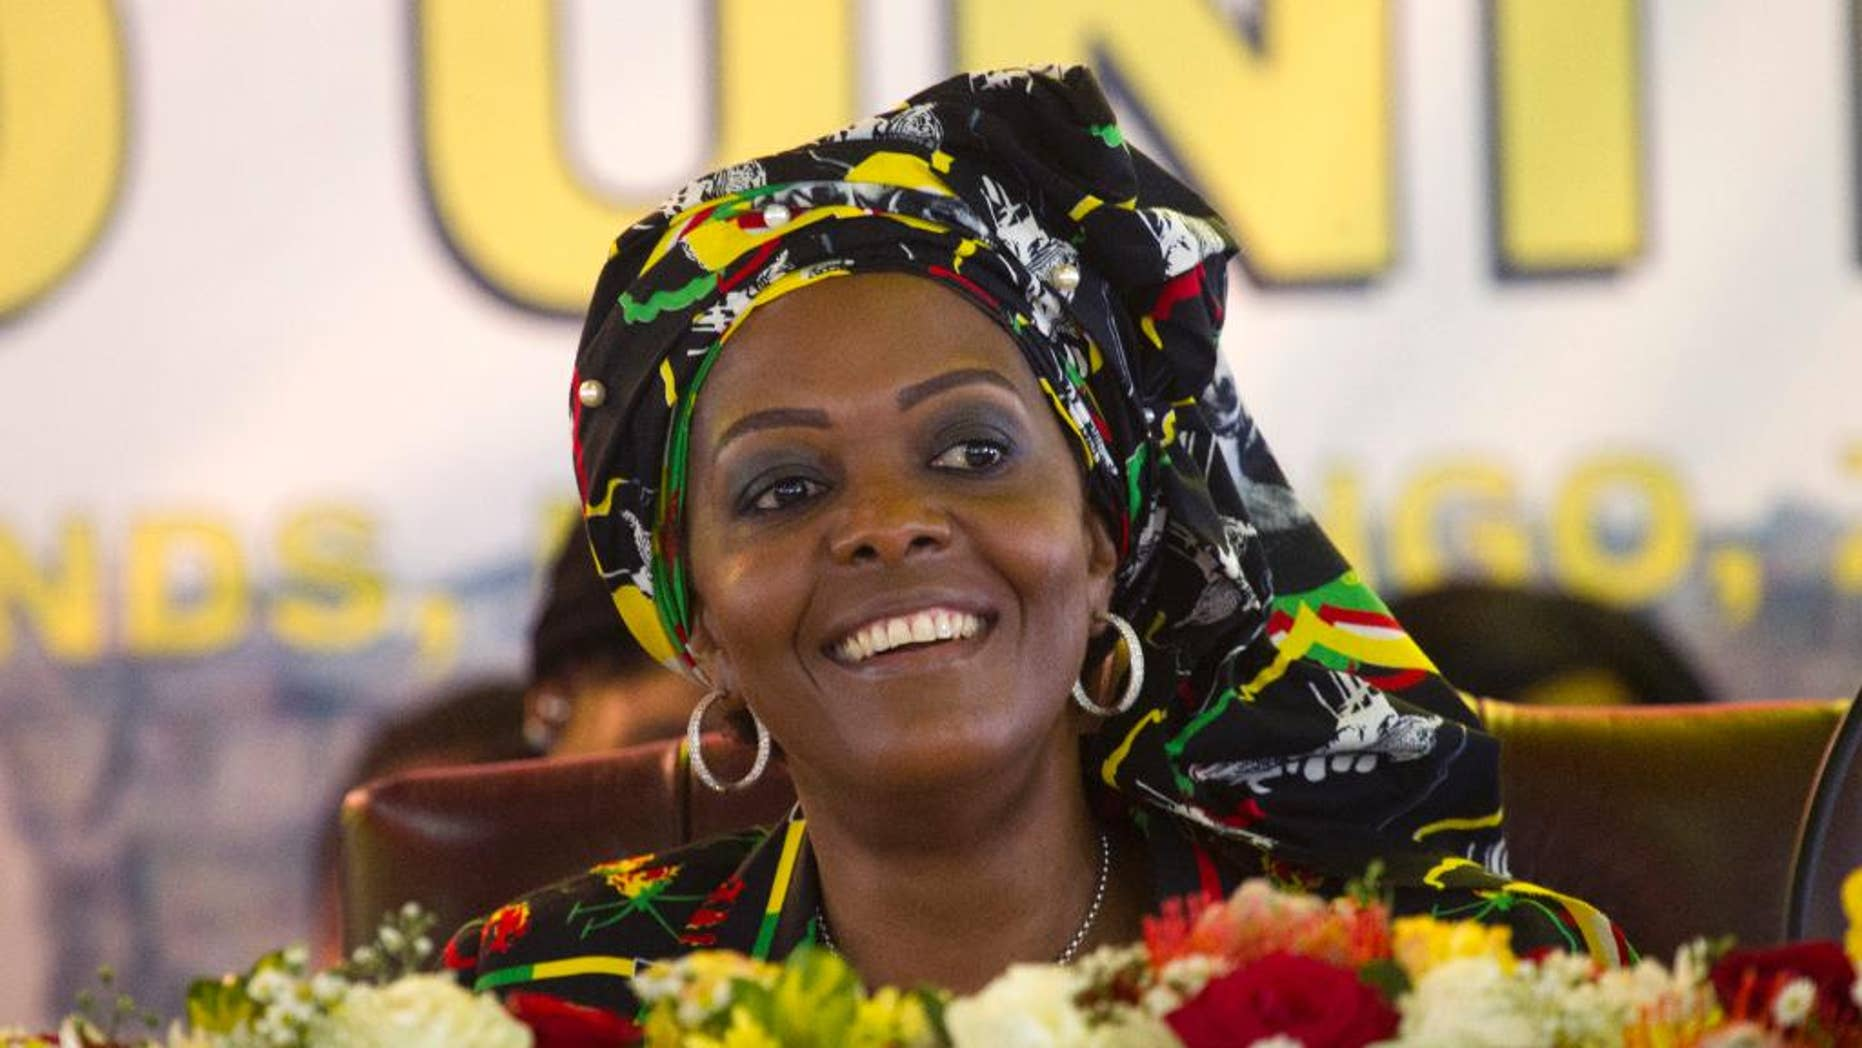 JUST IN: South Africa issues arrest warrant for Grace Mugabe